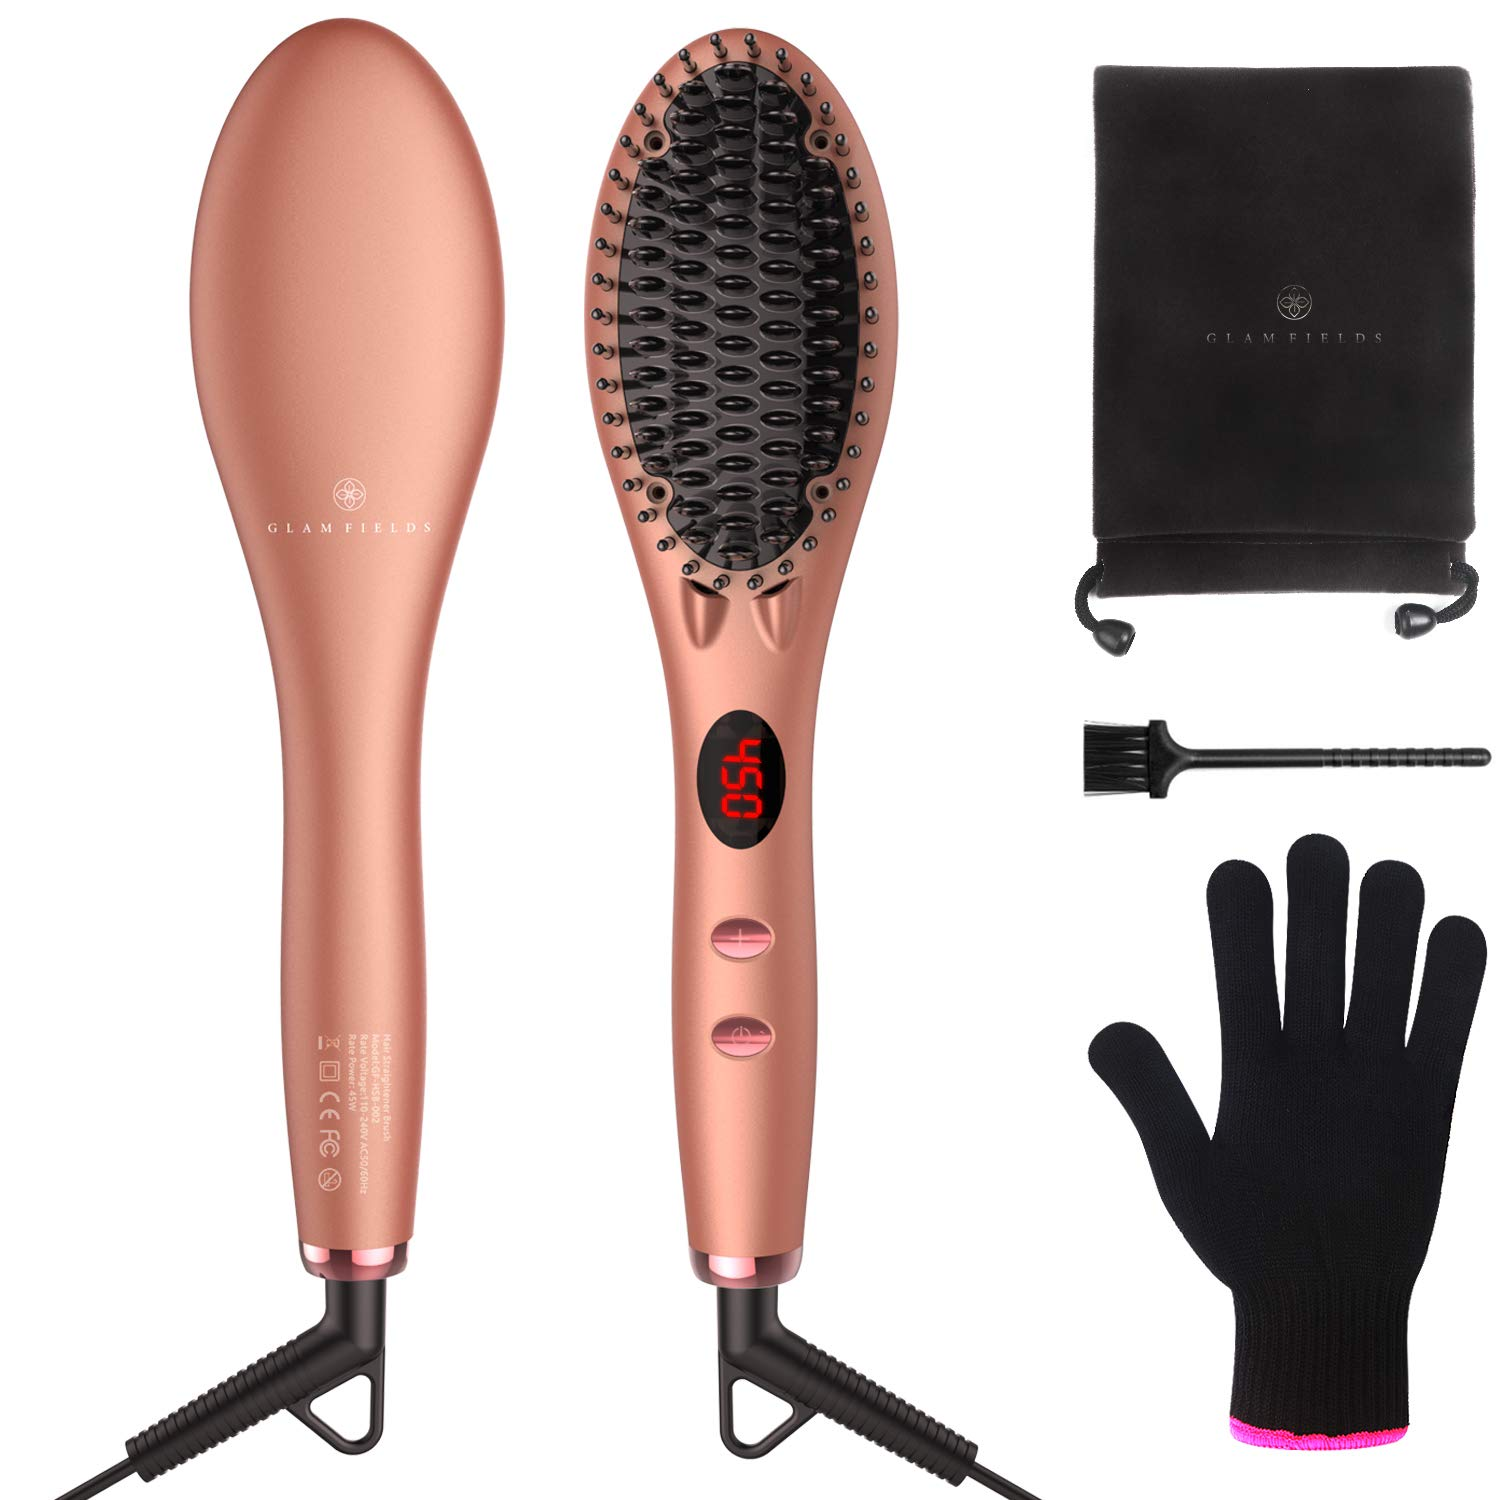 Straightening Brush 2.0, GLAMFIELDS Hair Straightener Iron Brush with Double Negative ions Anti-scald Faster Heating MCH Ceramic Technology 110-240V Travel Size Auto Shut Off Temperature Lock Function